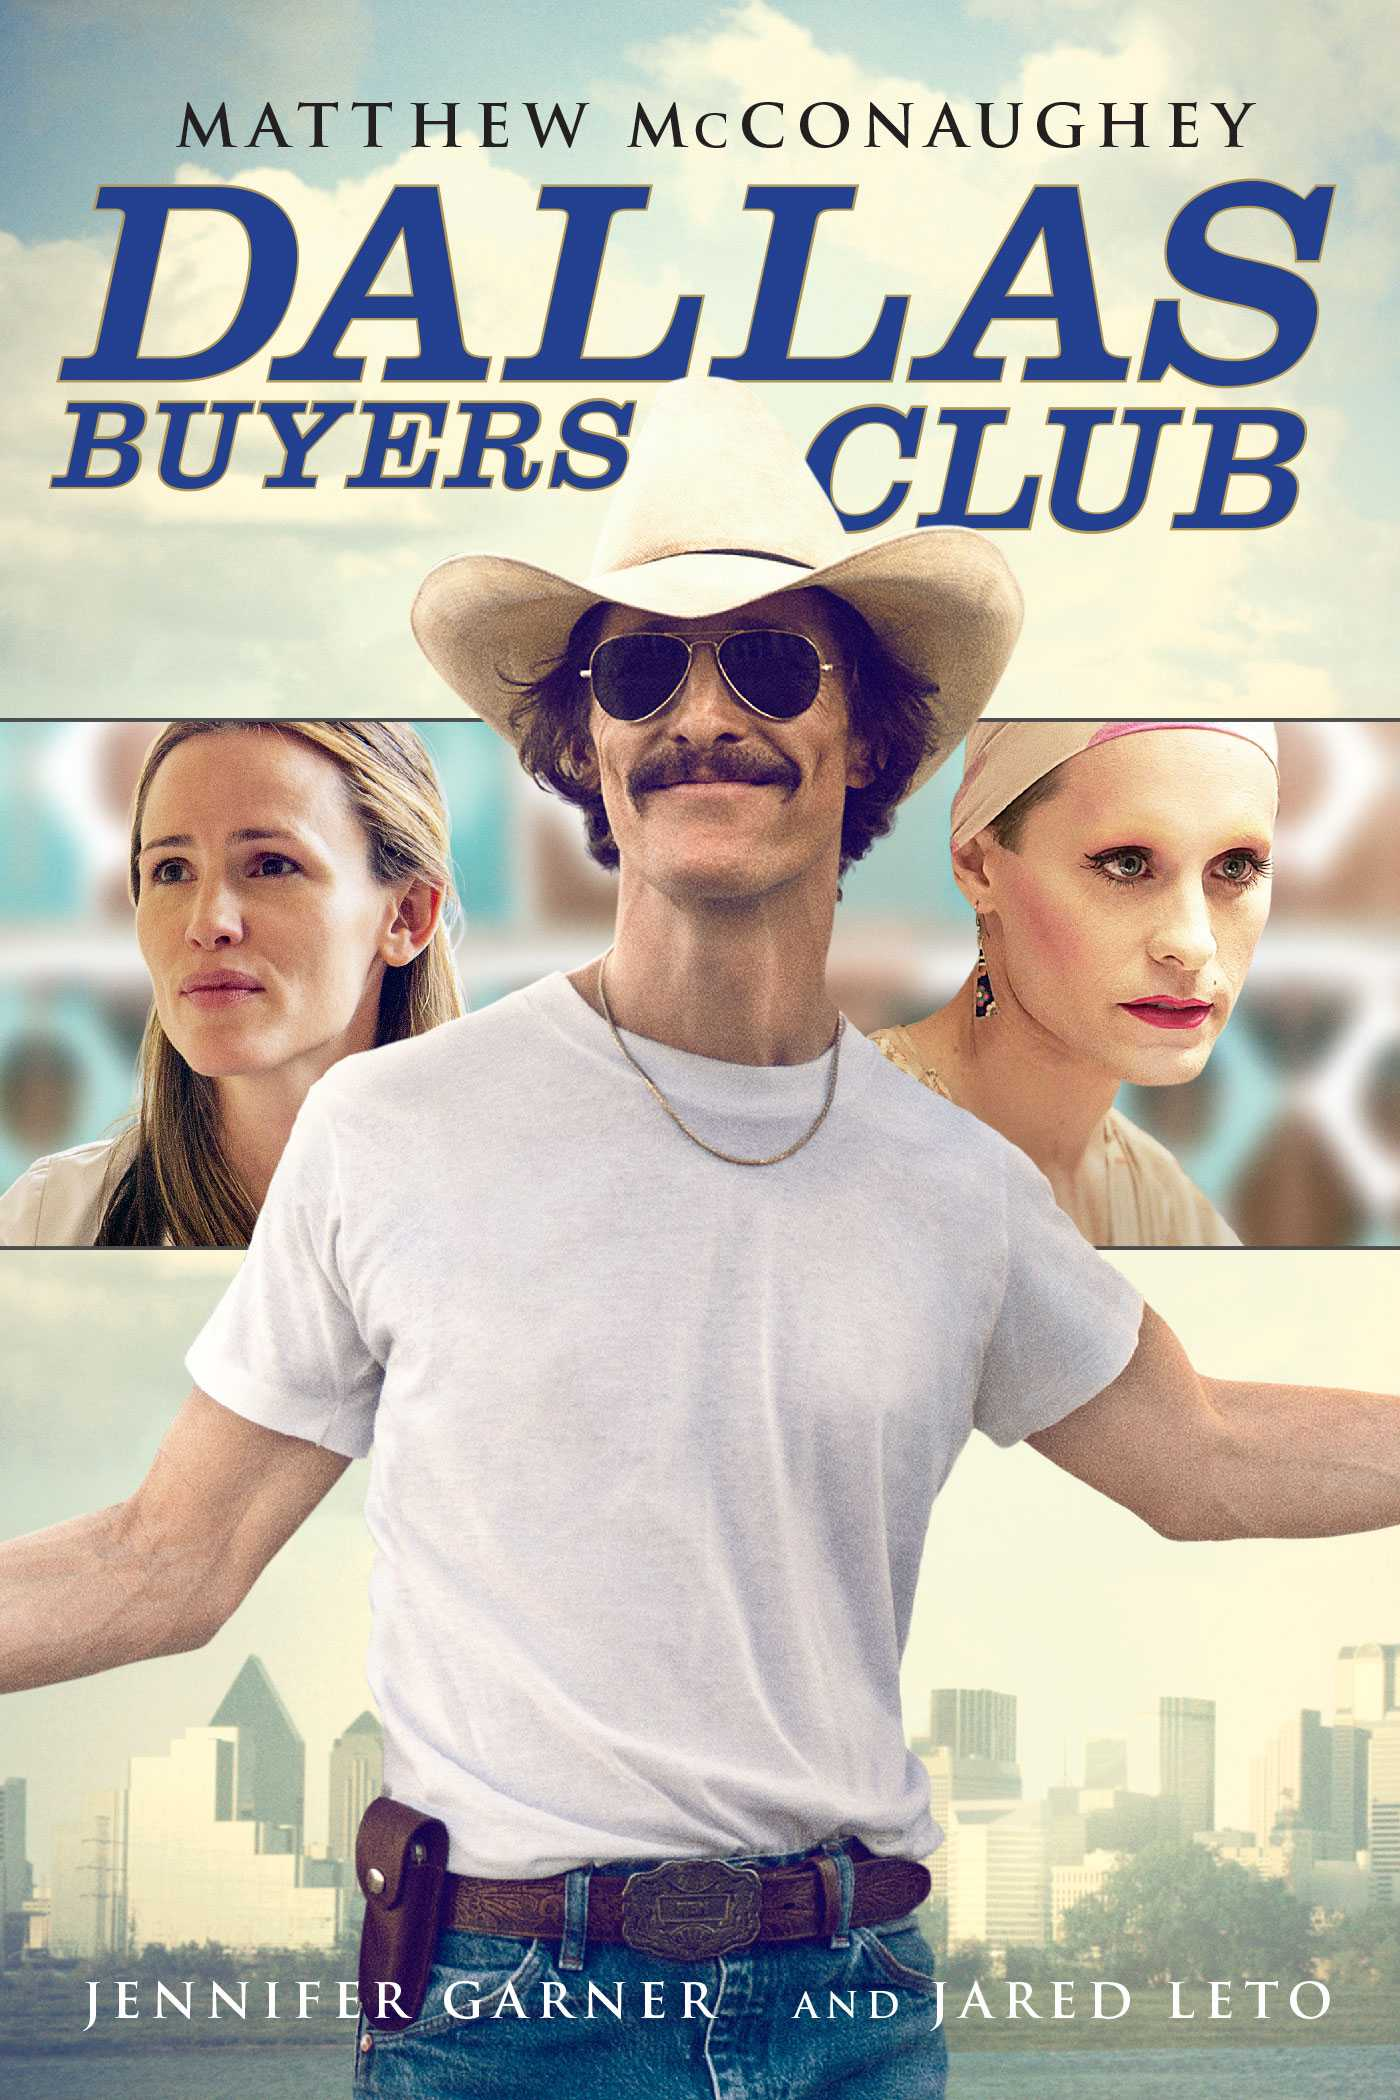 Movie poster for Dallas Buyers Club, whose 1-year release anniversary is coming up in 2 months